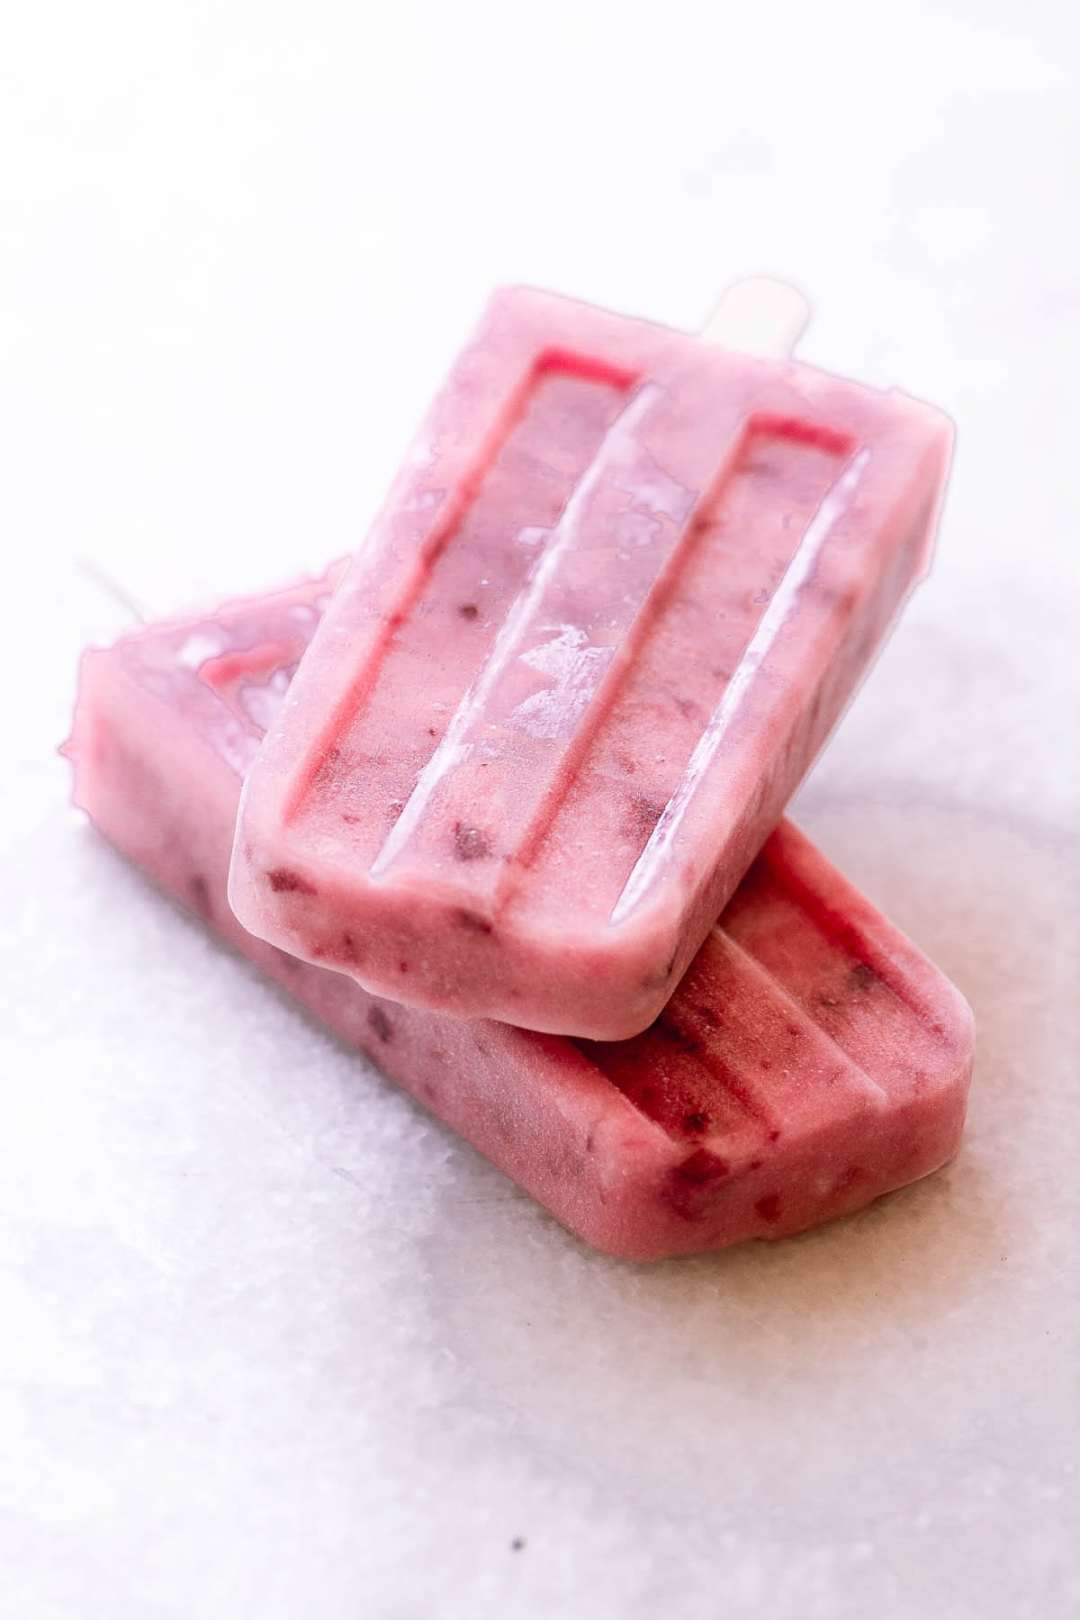 a stack of two white peach popsicles